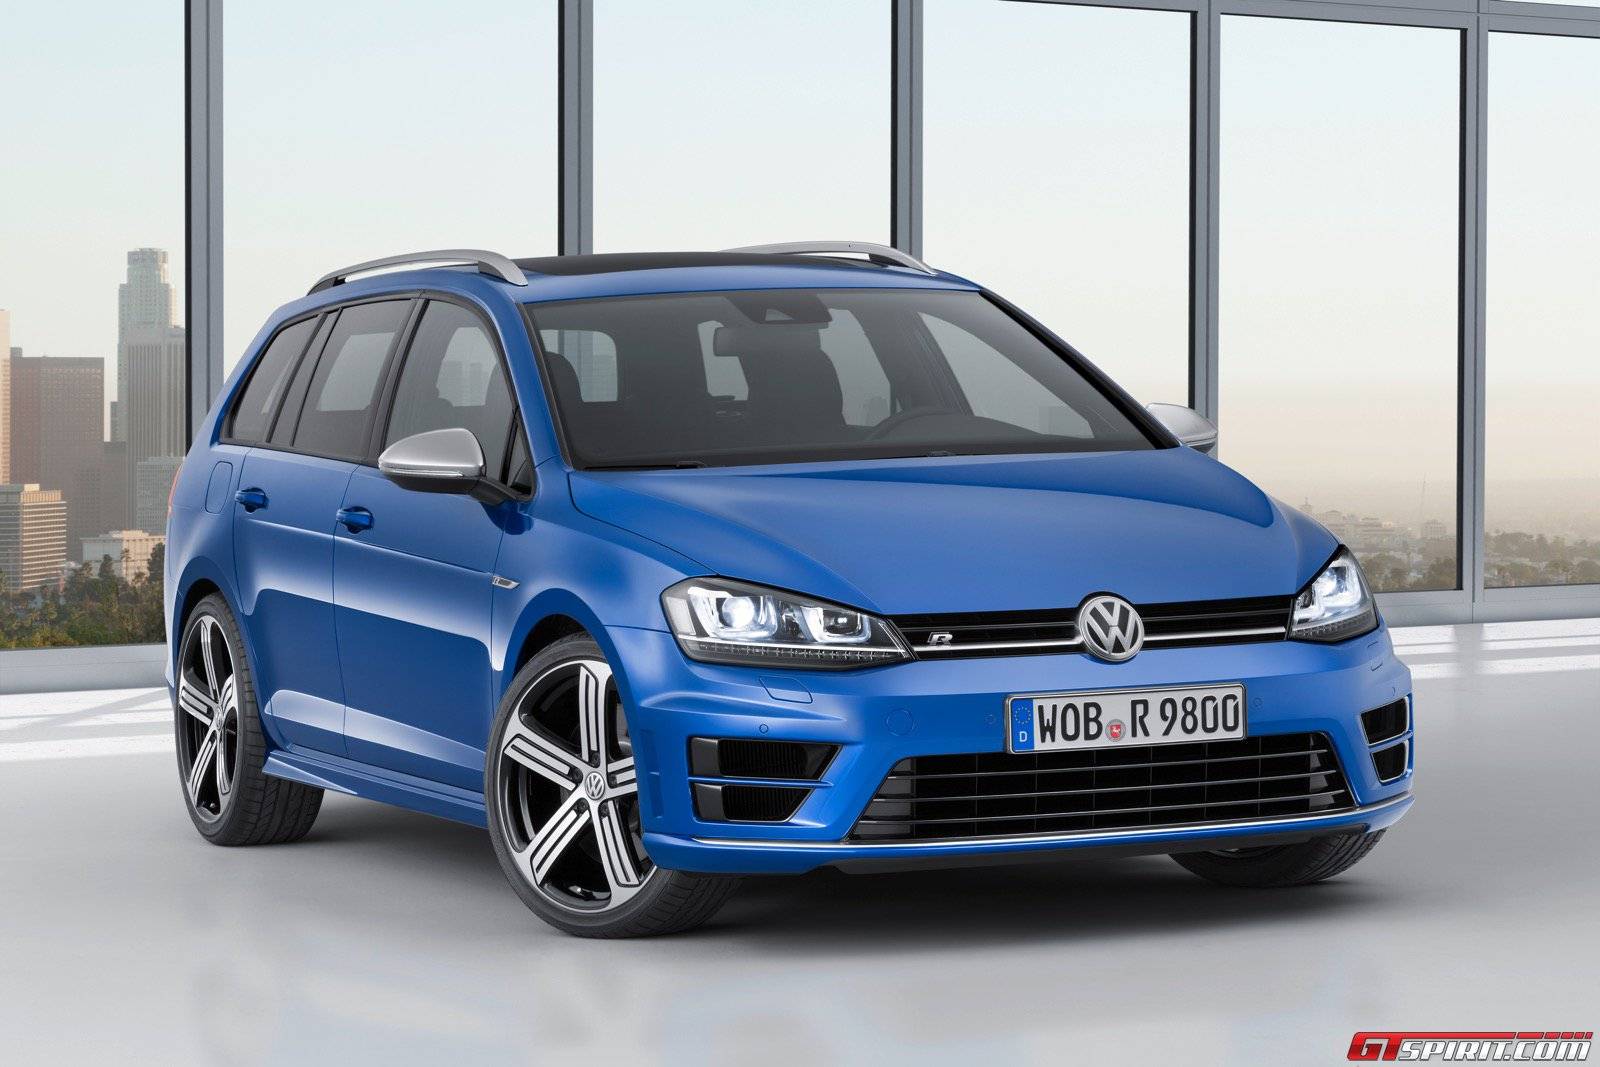 Golf R Estate Review 2017 >> Official: 2015 Volkswagen Golf R Variant - GTspirit